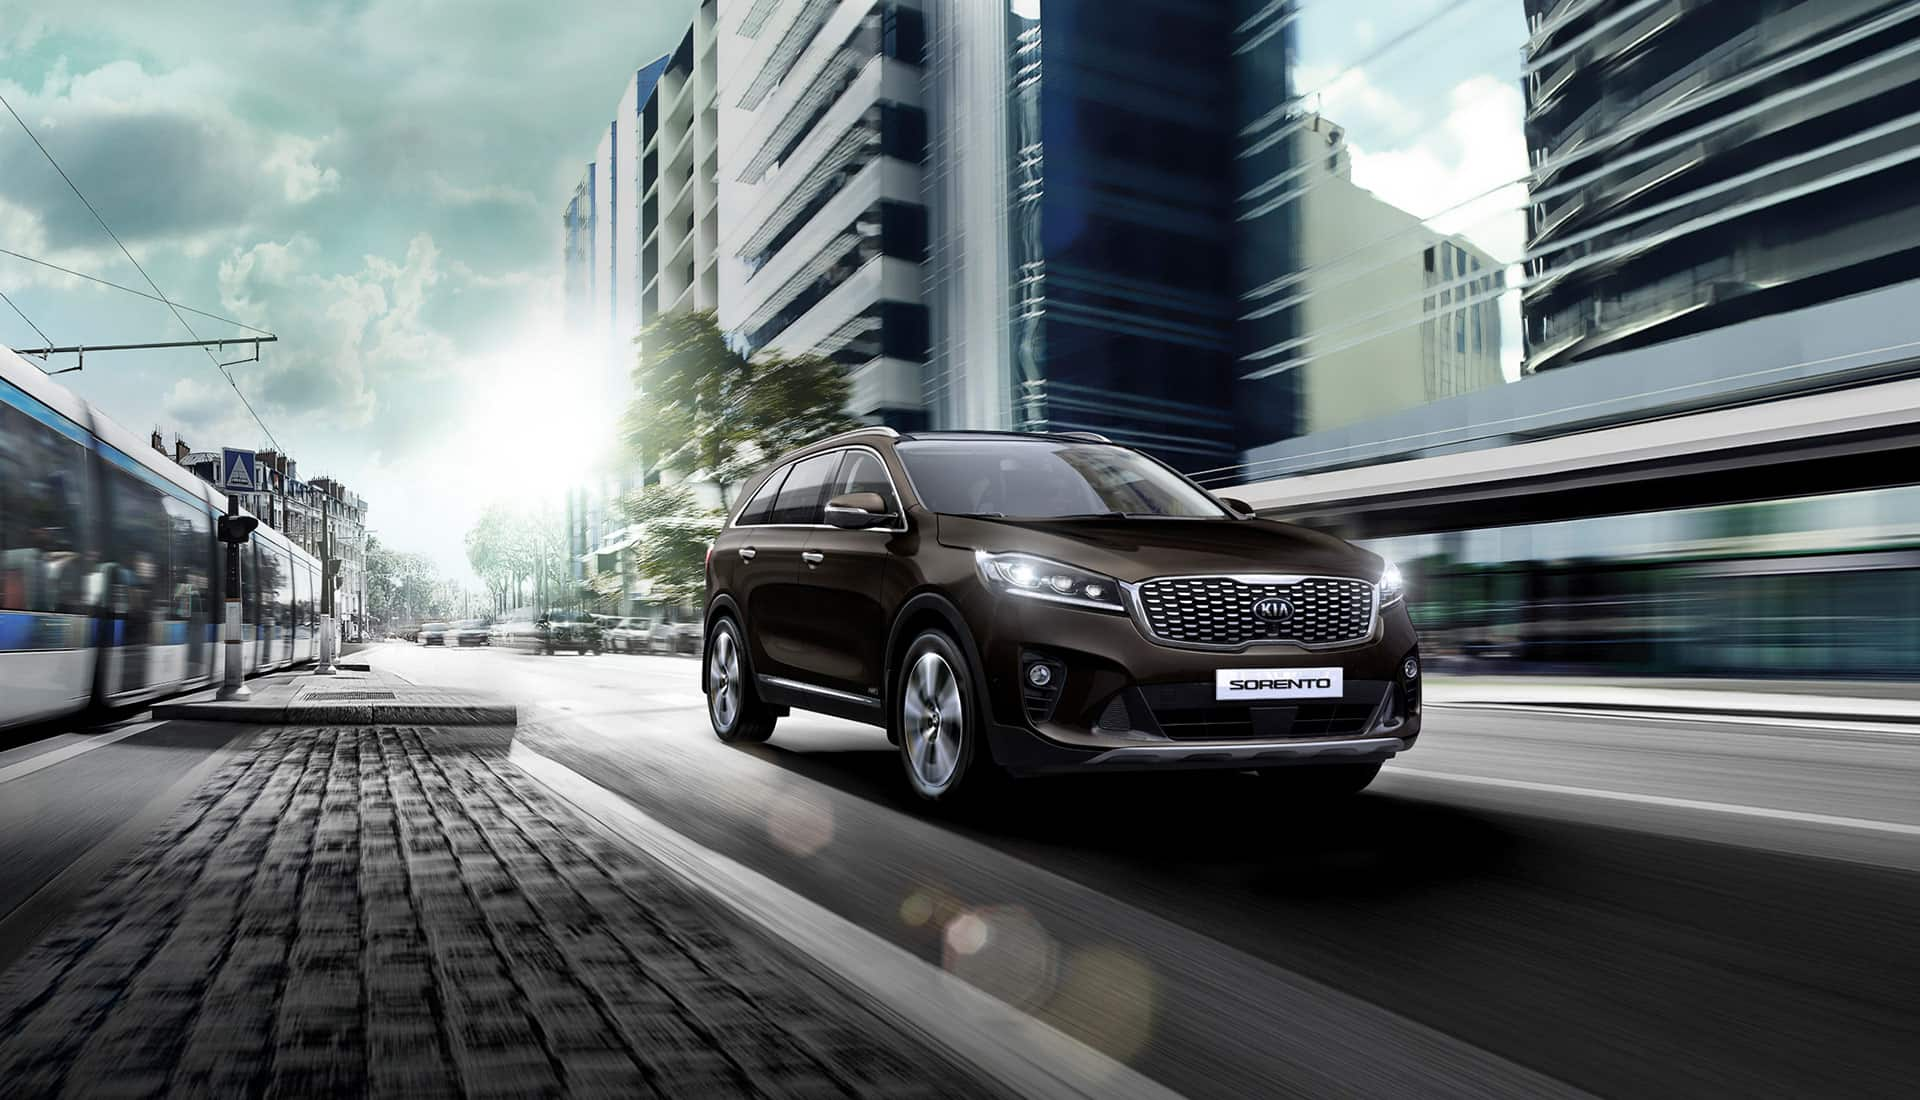 Kia Sorento outdoor